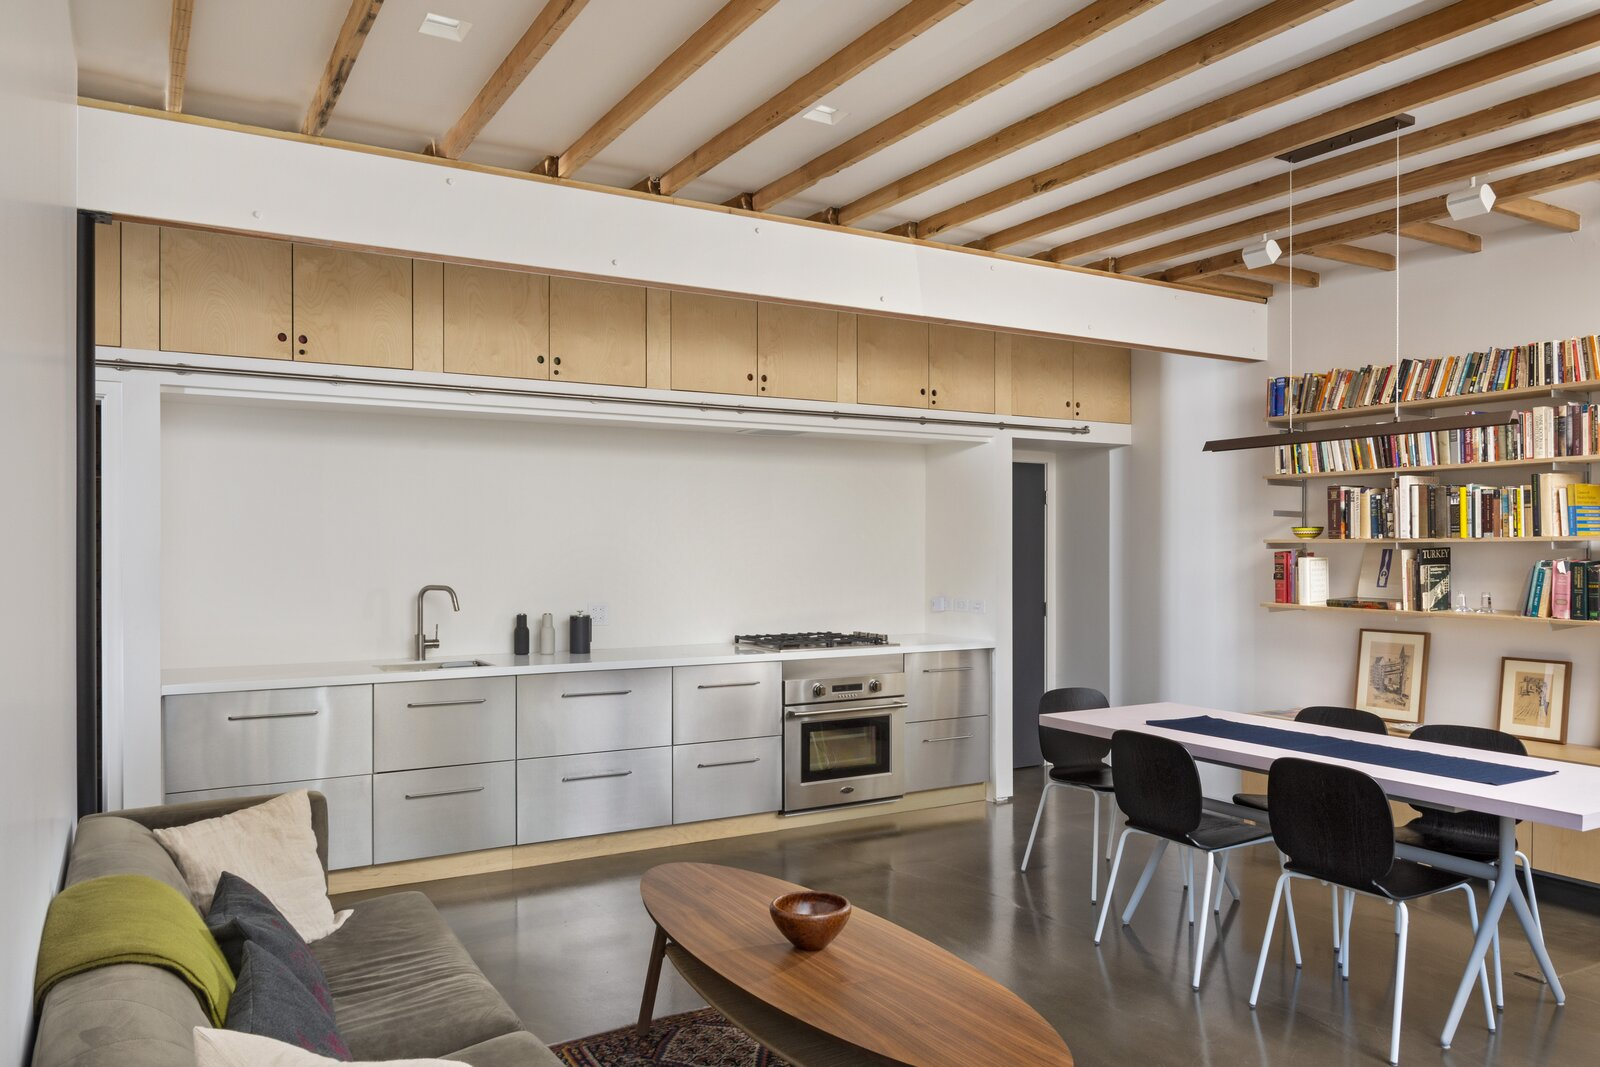 Third Street renovated kitchen and living space